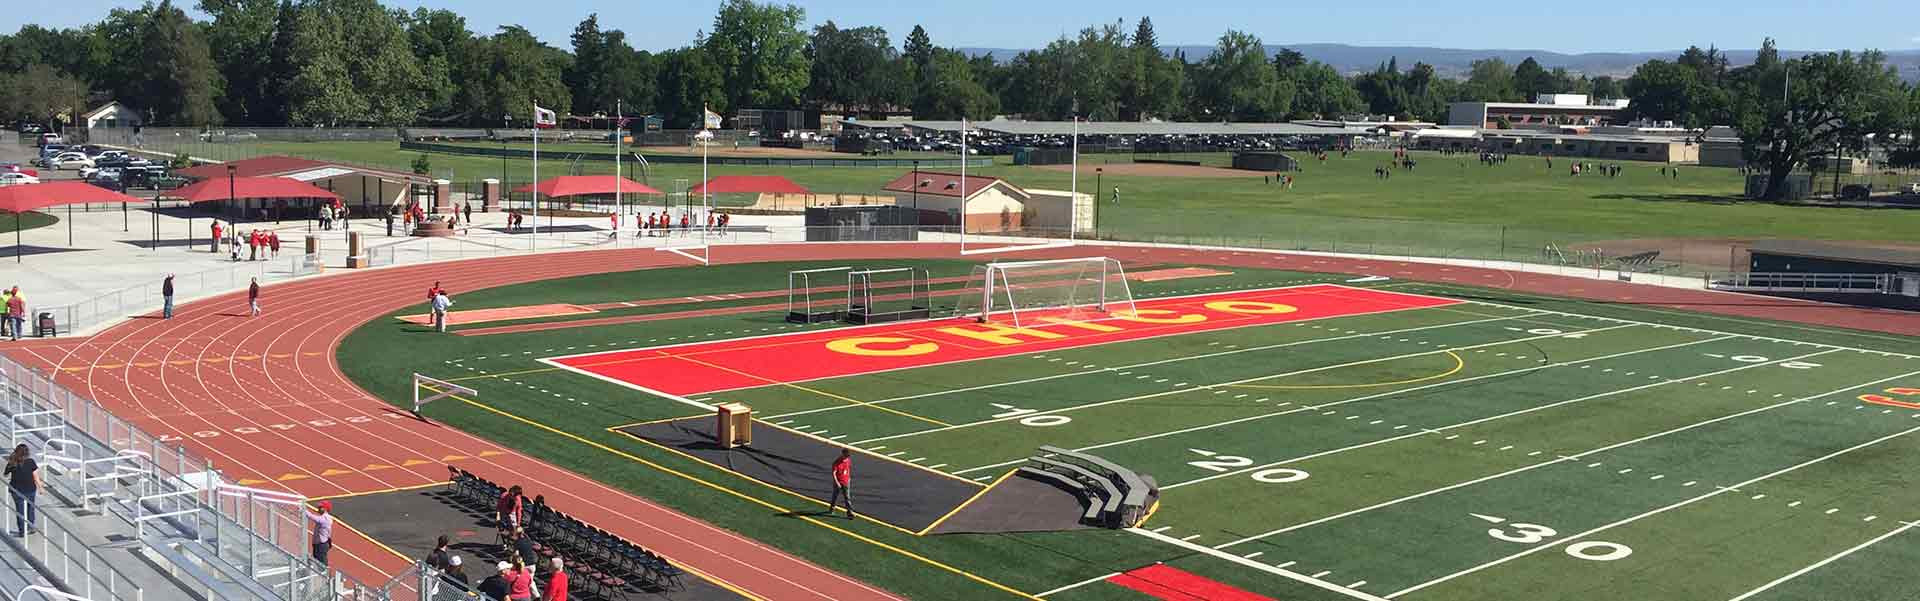 Chico Unified School District Sports Facility in California USA